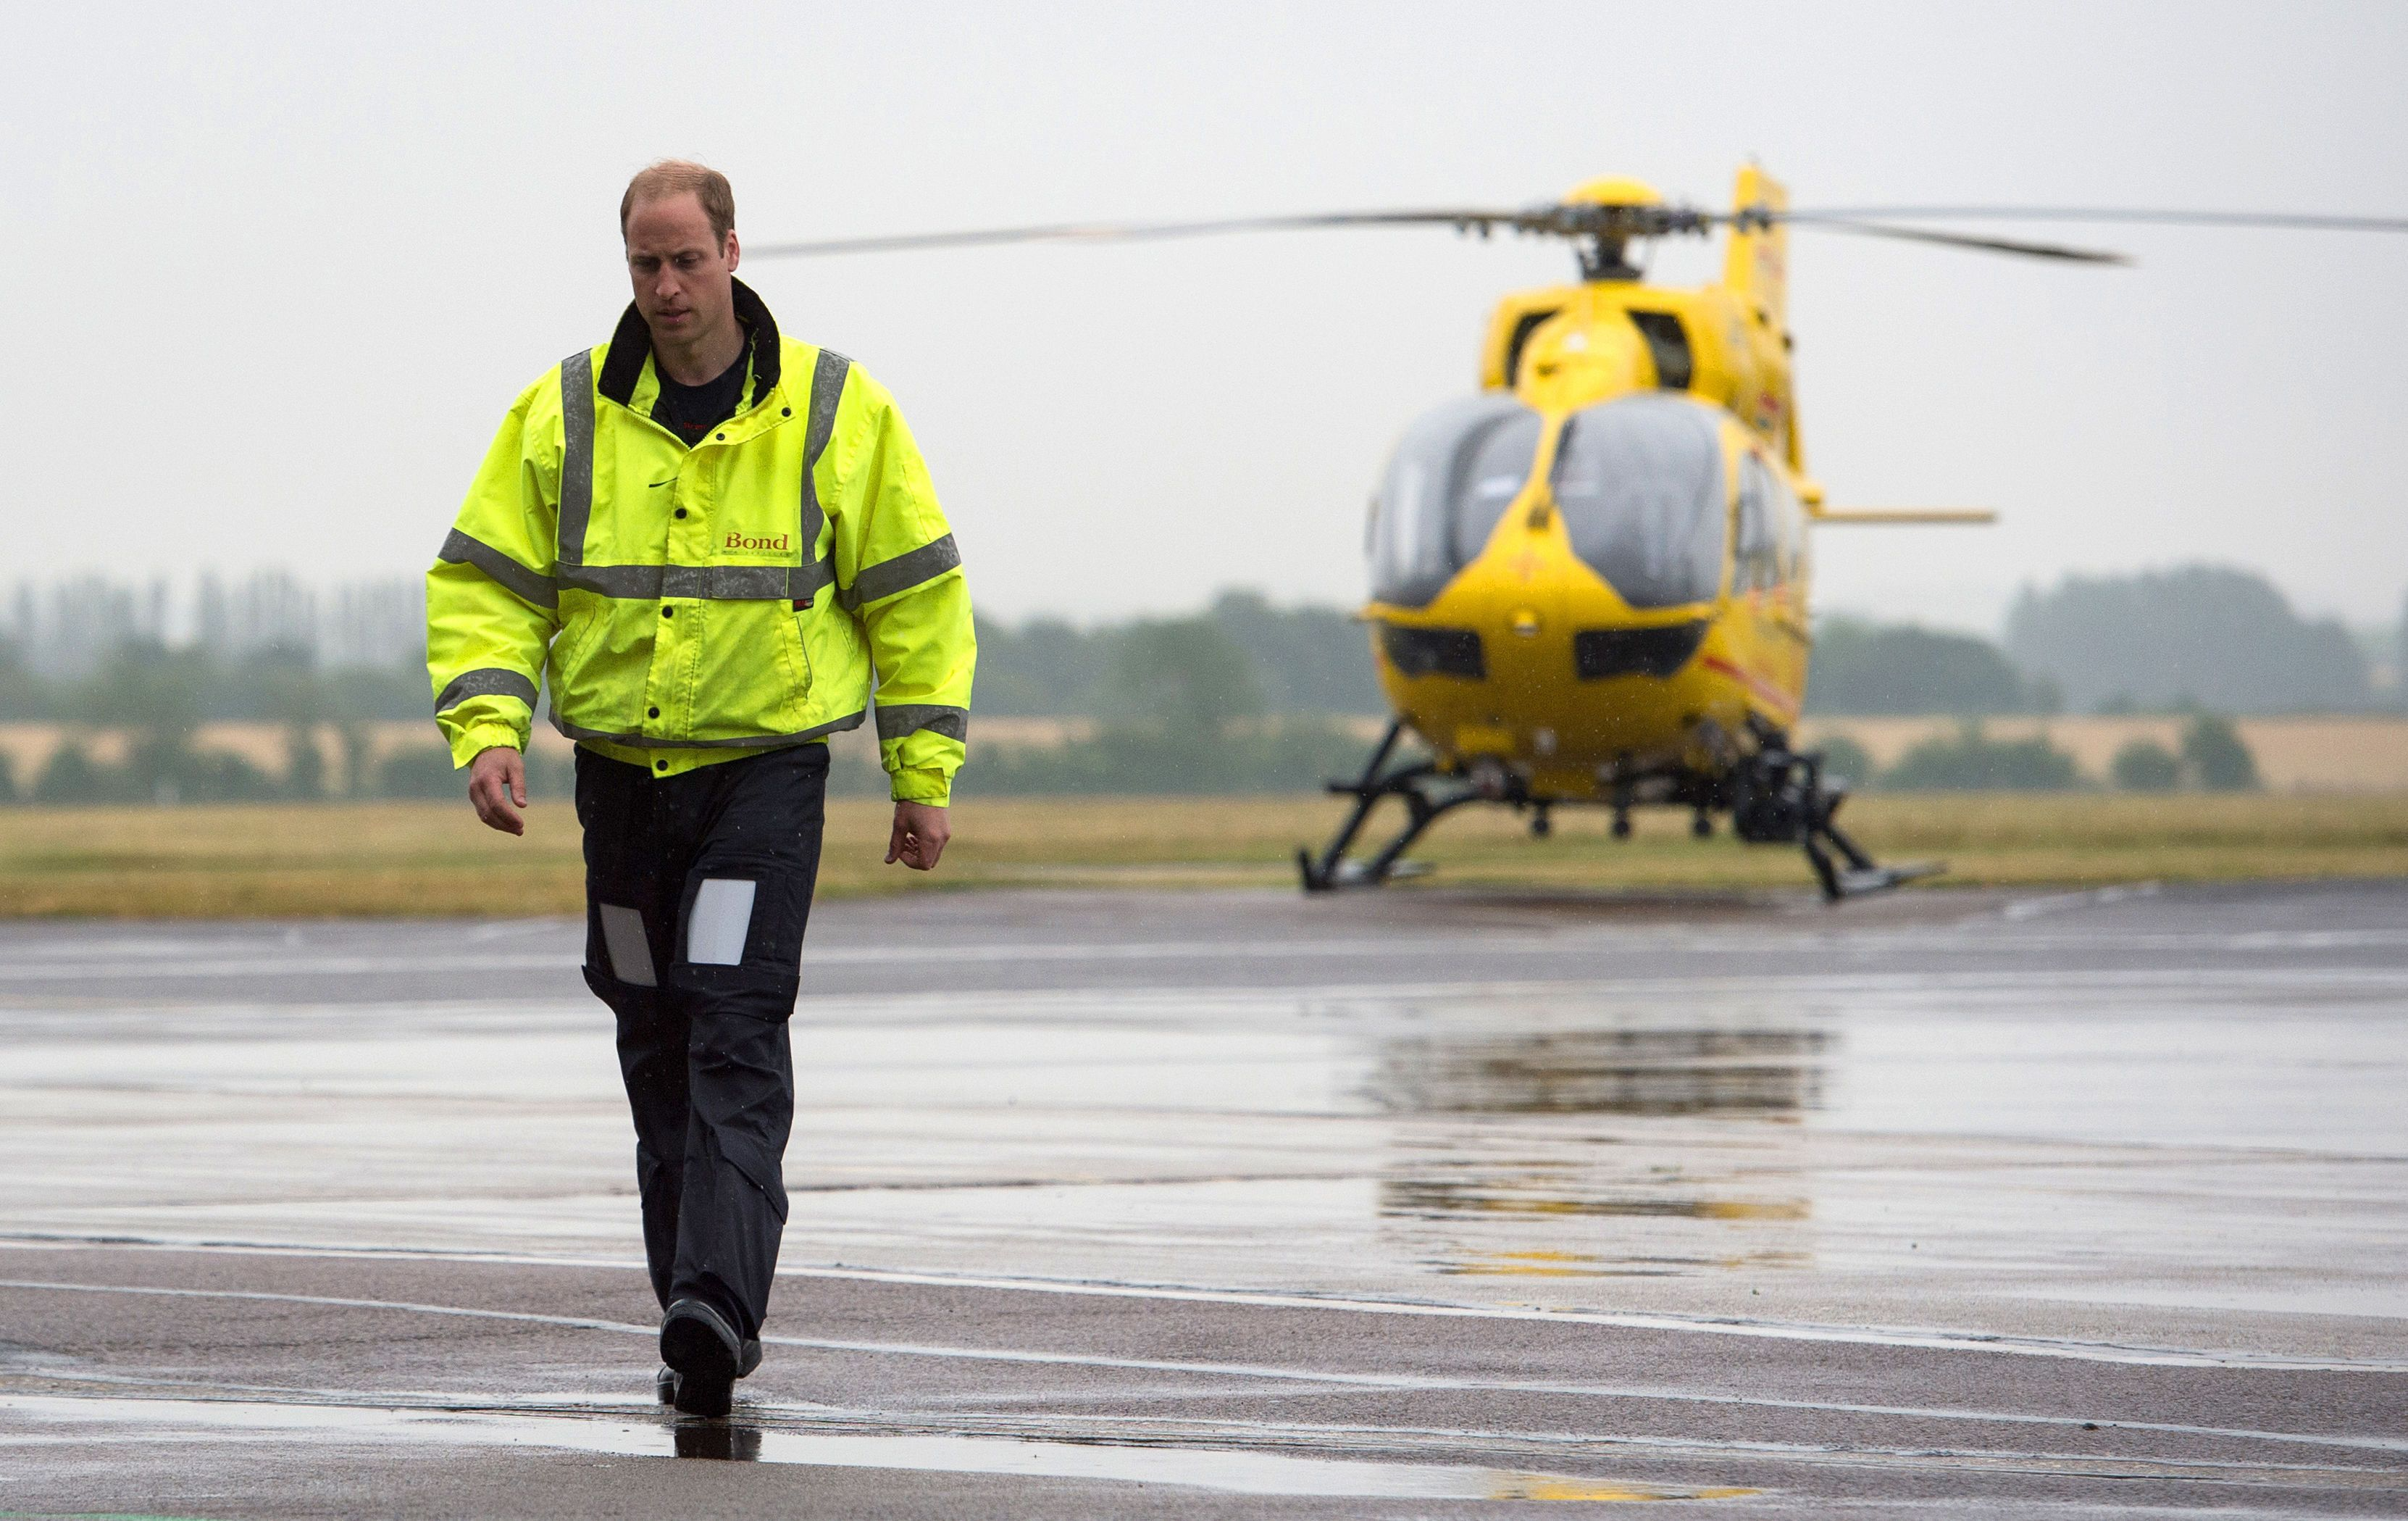 Prince William Talks About His 'Incredibly Tough' Days As An Air Ambulance